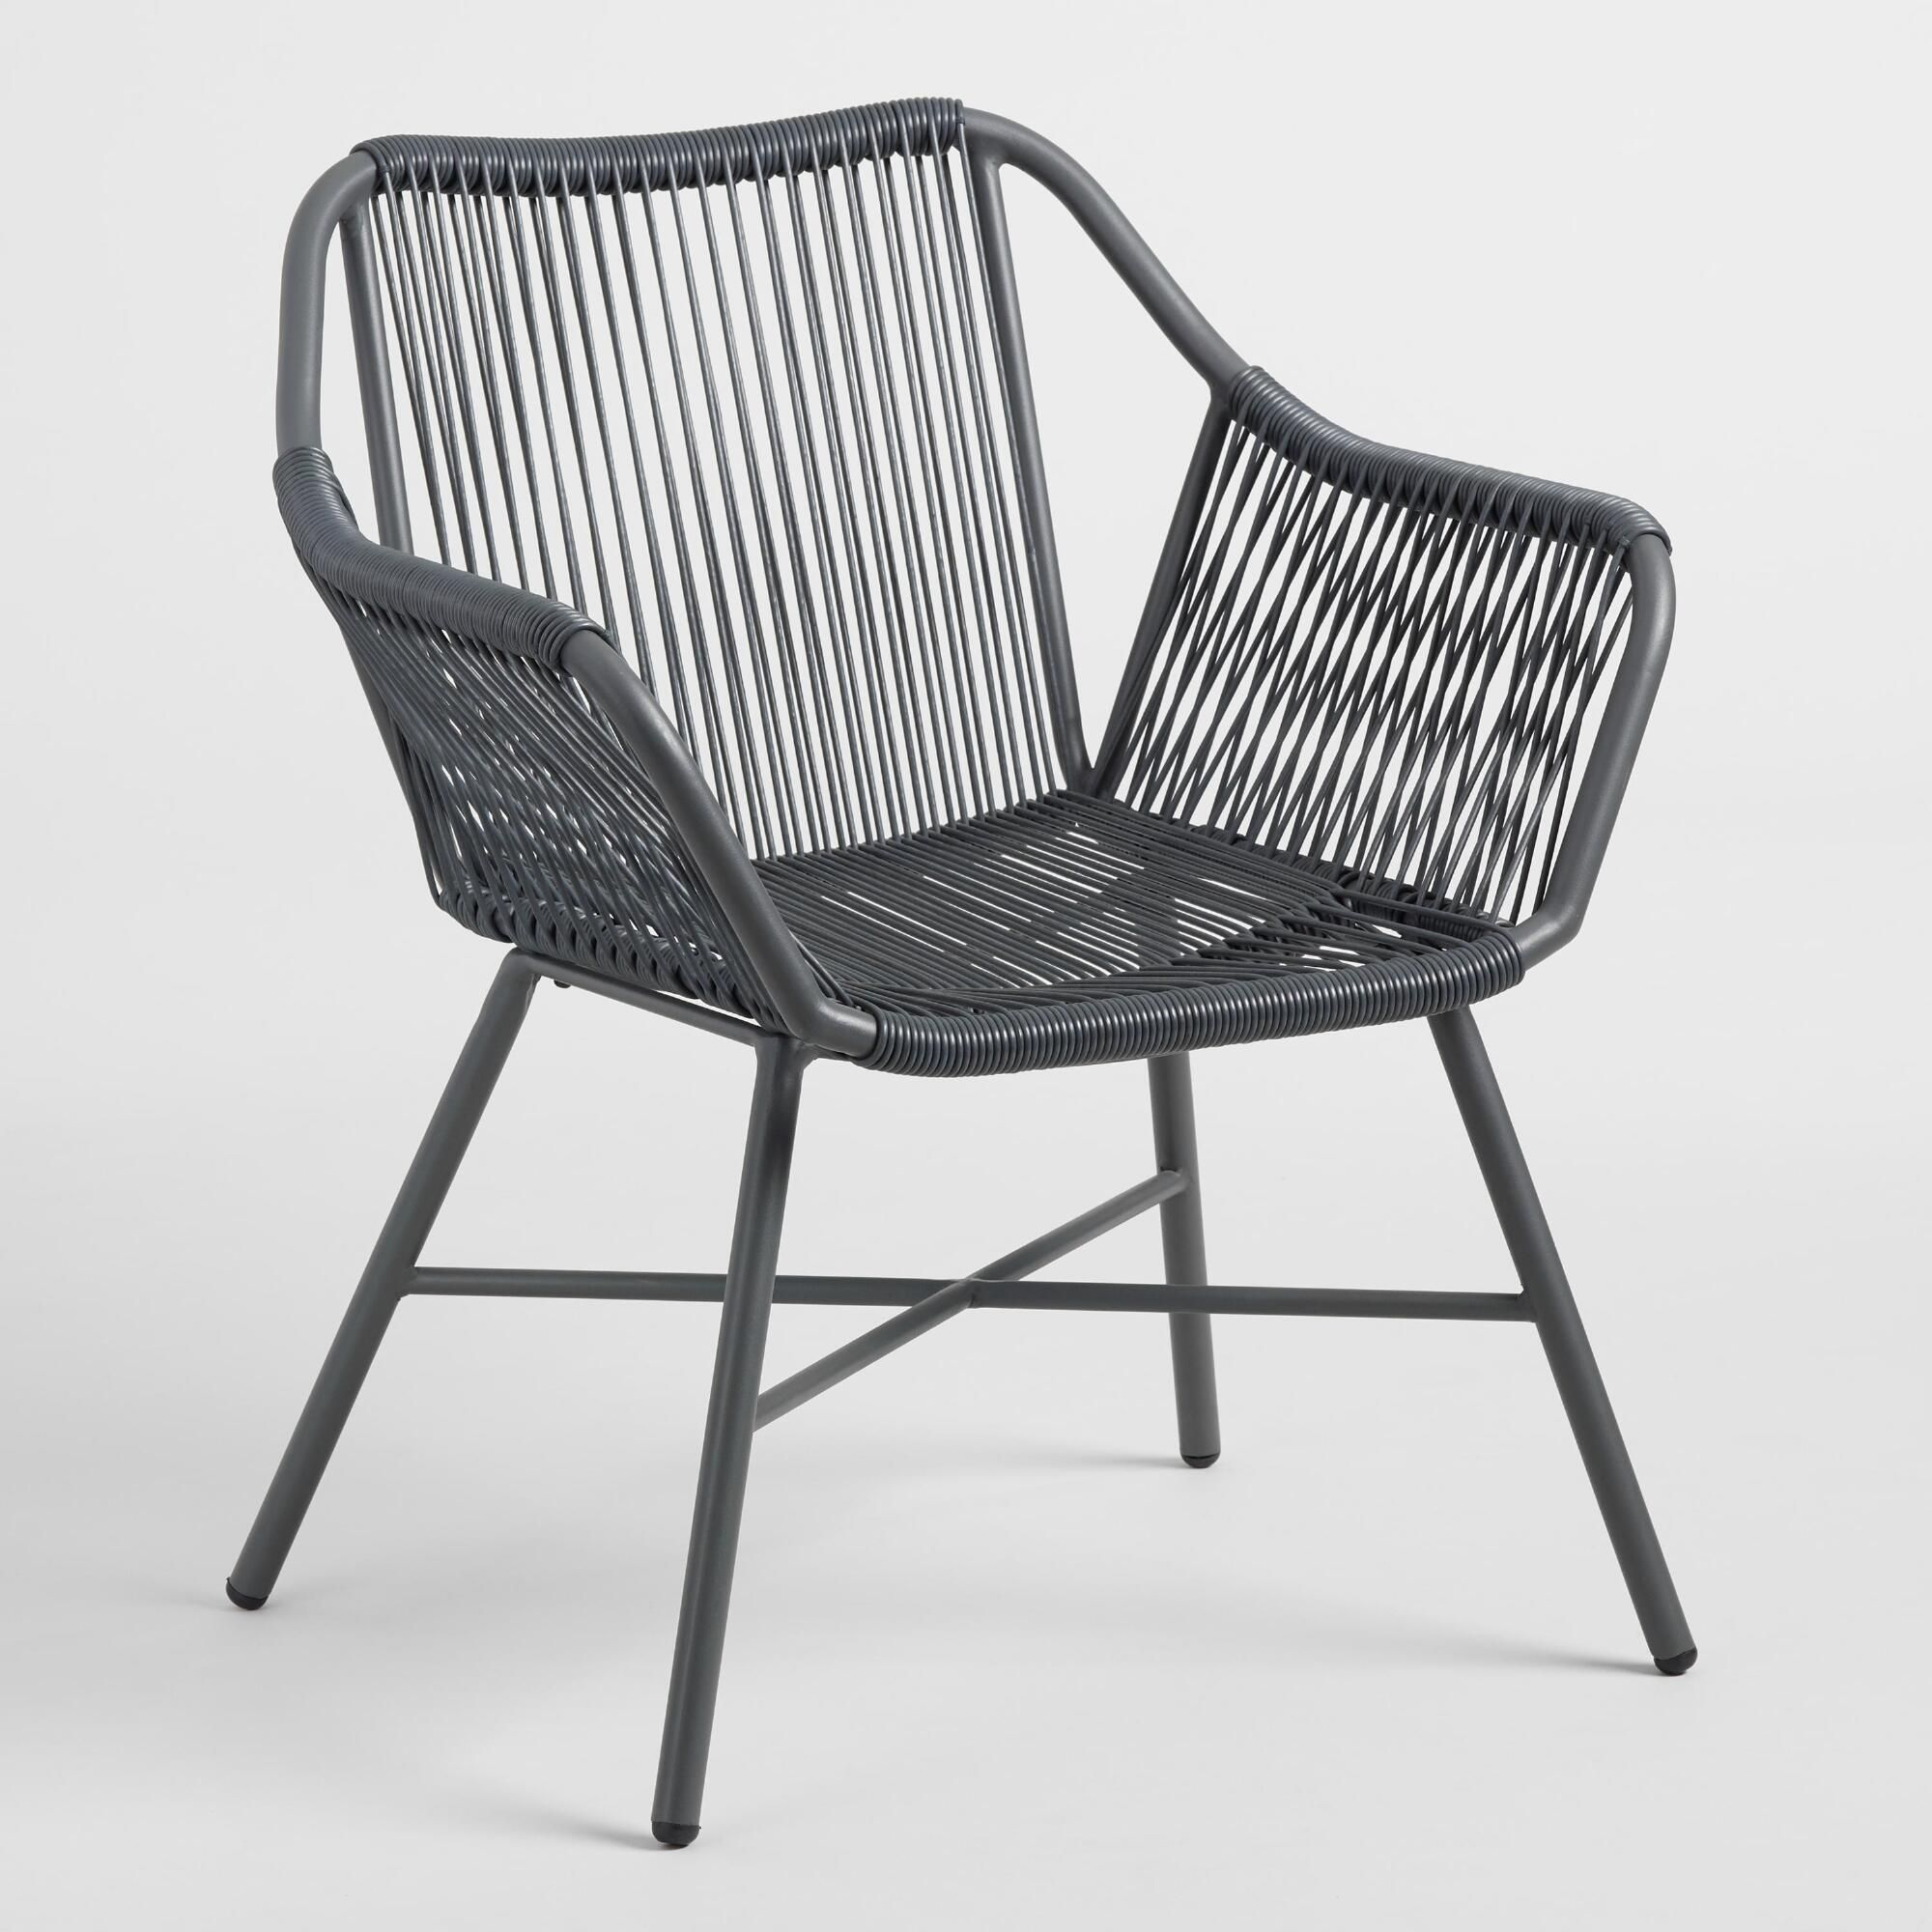 Durban Outdoor Patio Dining Chair